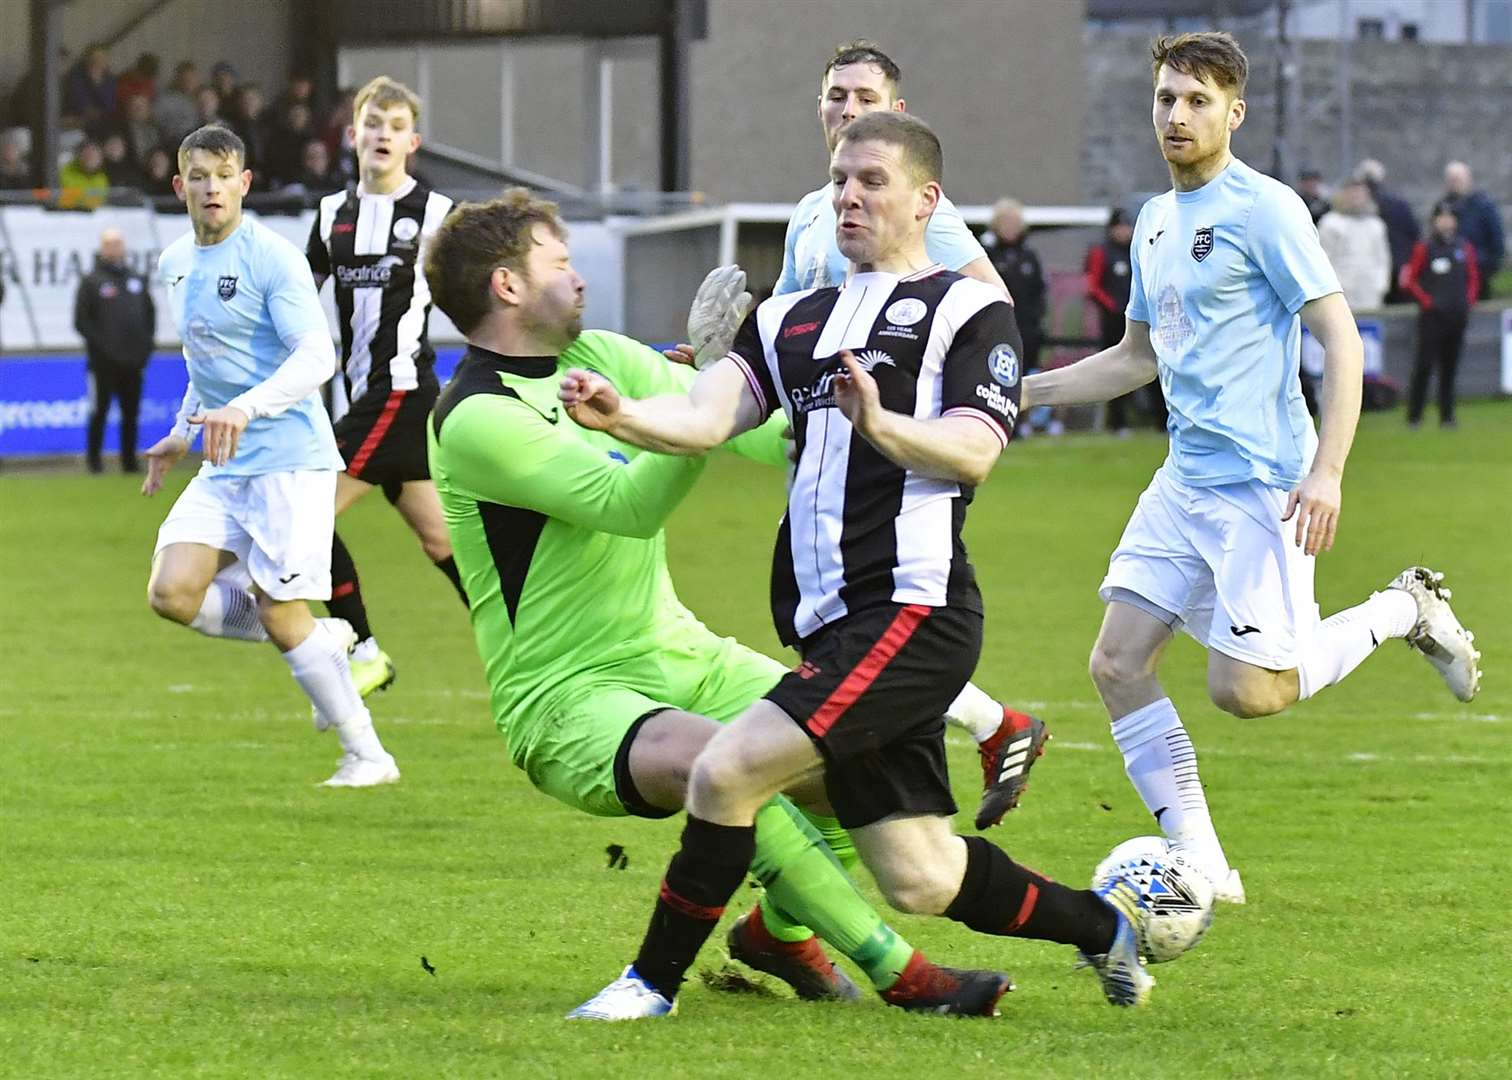 David Allan goes into a crunching challenge with Fraserburgh keeper Paul Leask during Wick Academy's 2-0 defeat at home to Broch. Picture: Mel Roger